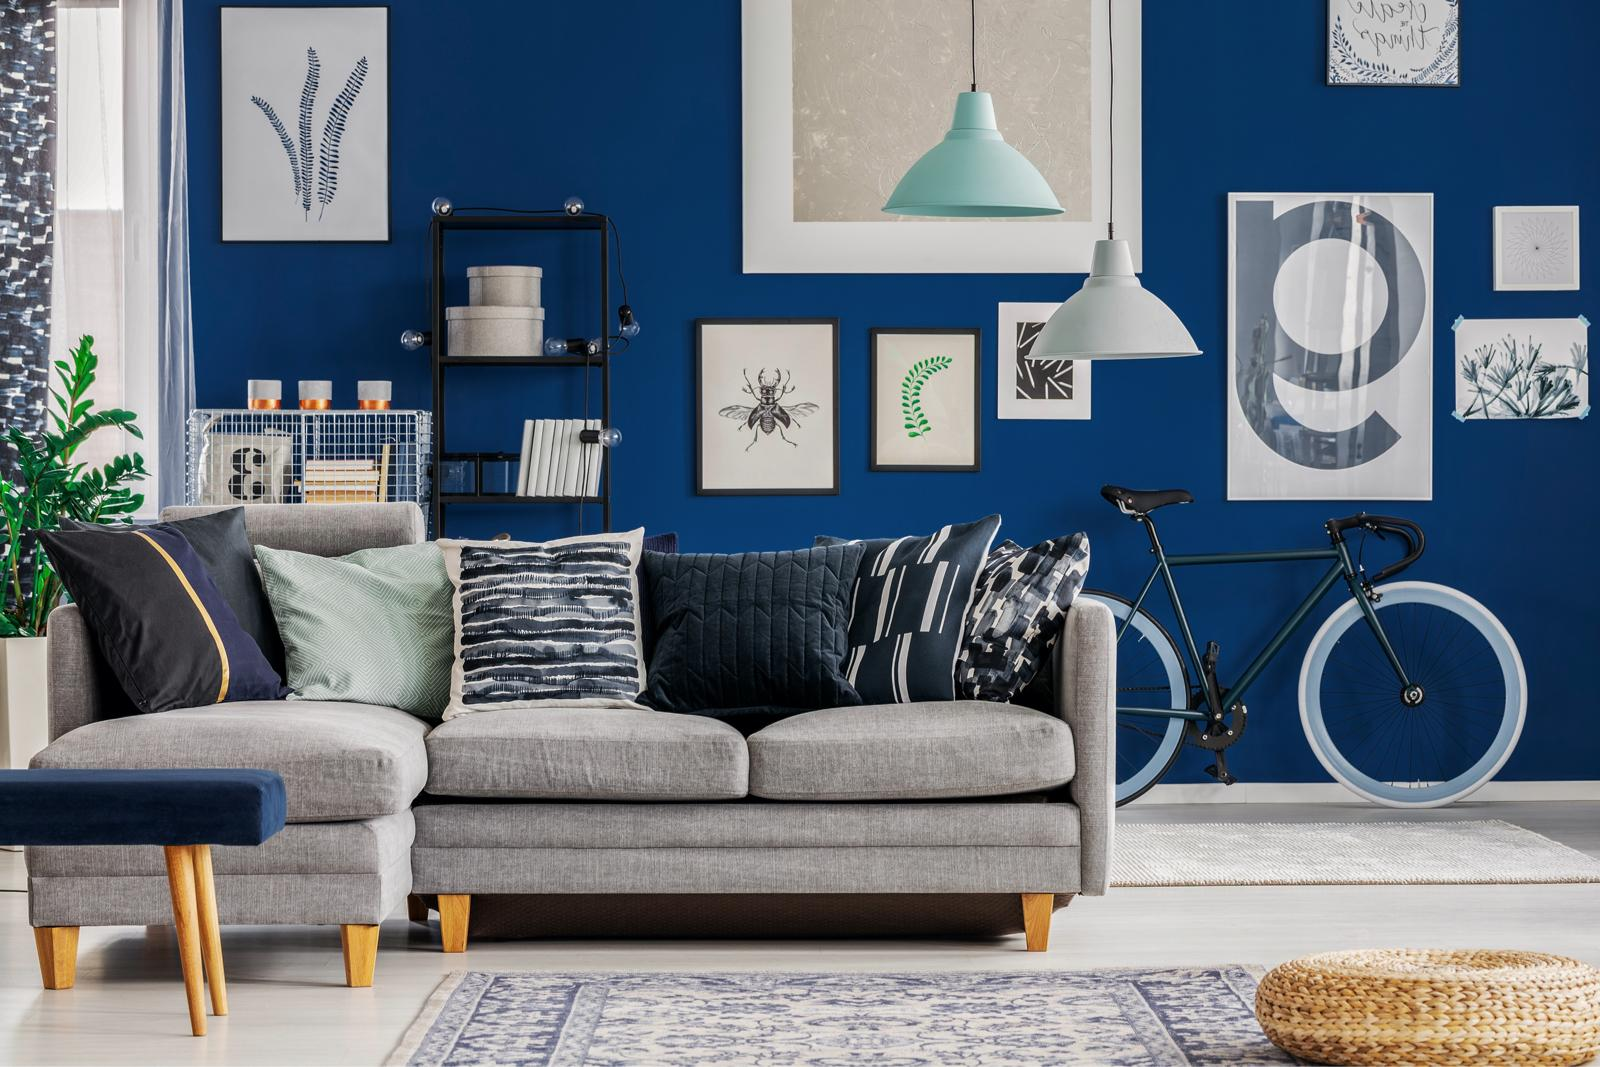 Maximalism Style And Why We Love It 22, Paneling Factory Of Virginia